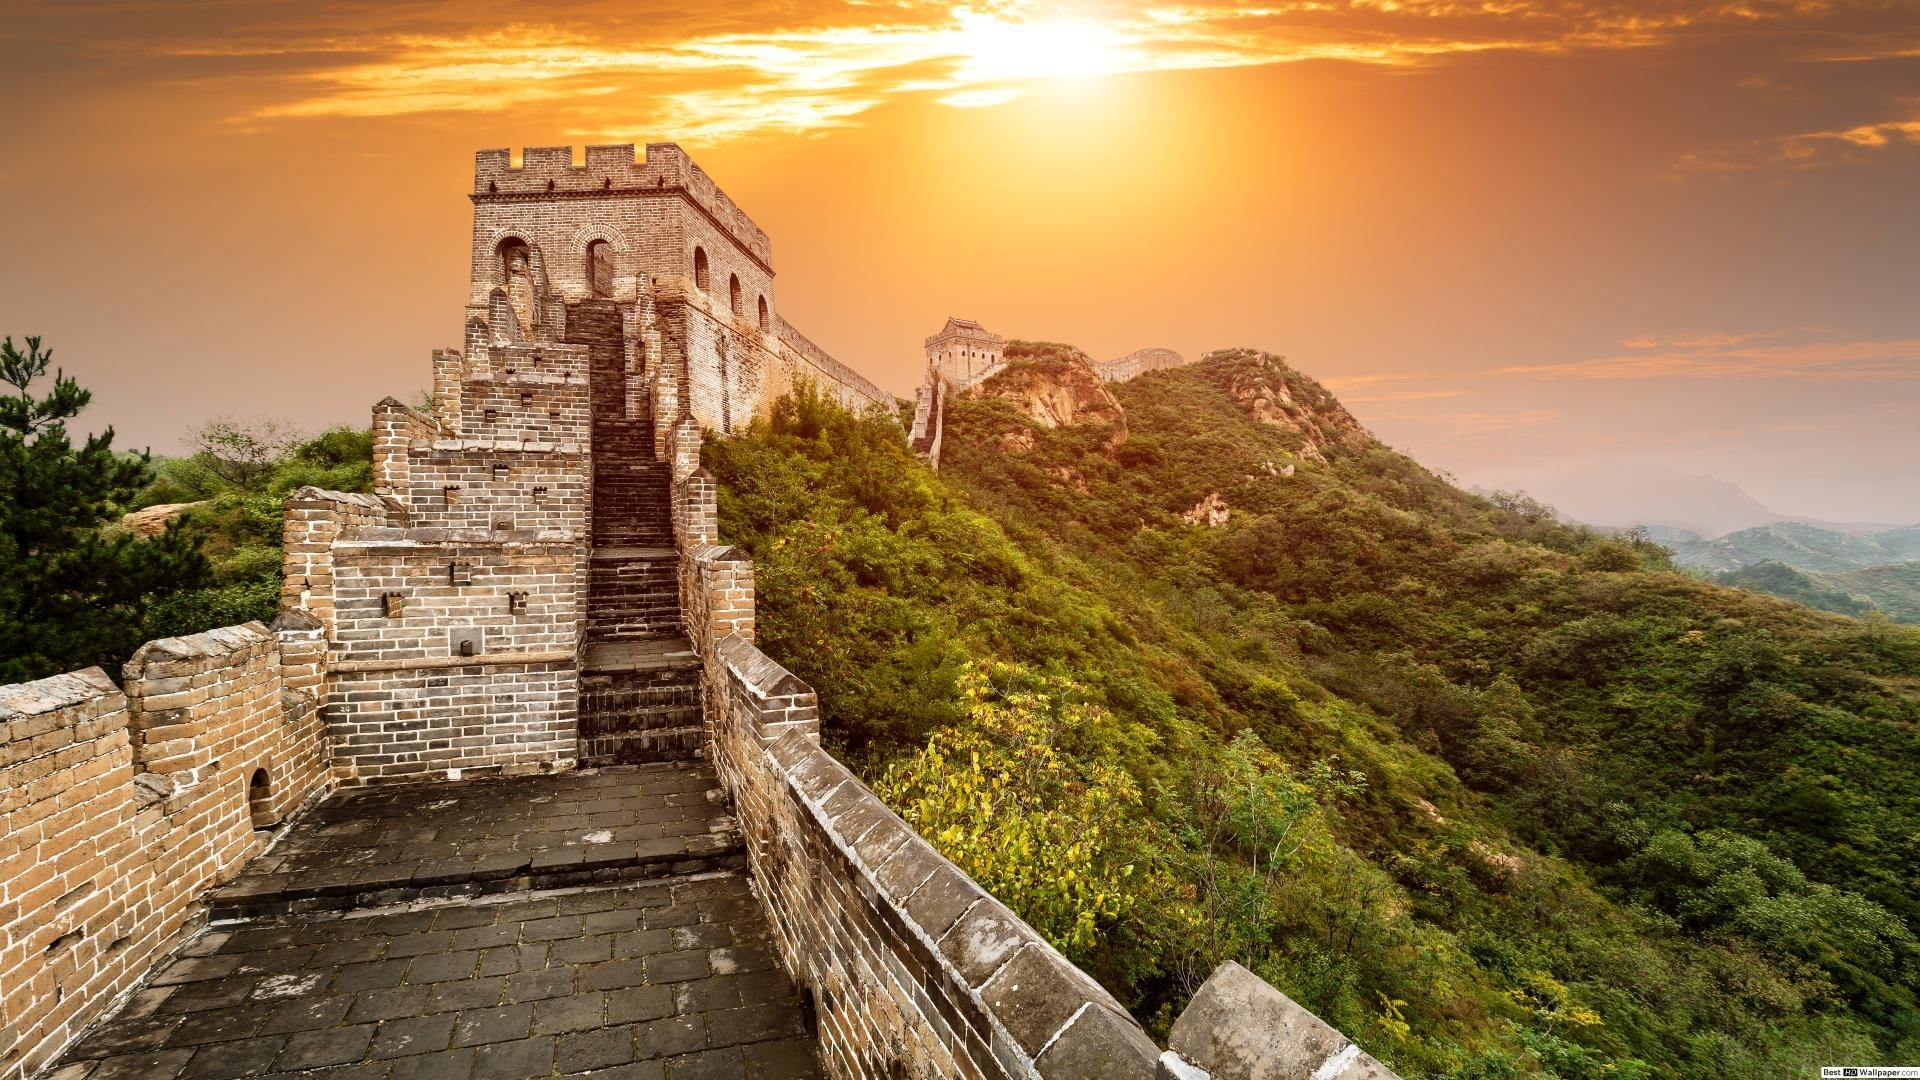 Great Wall Of China desktop wallpaper hd